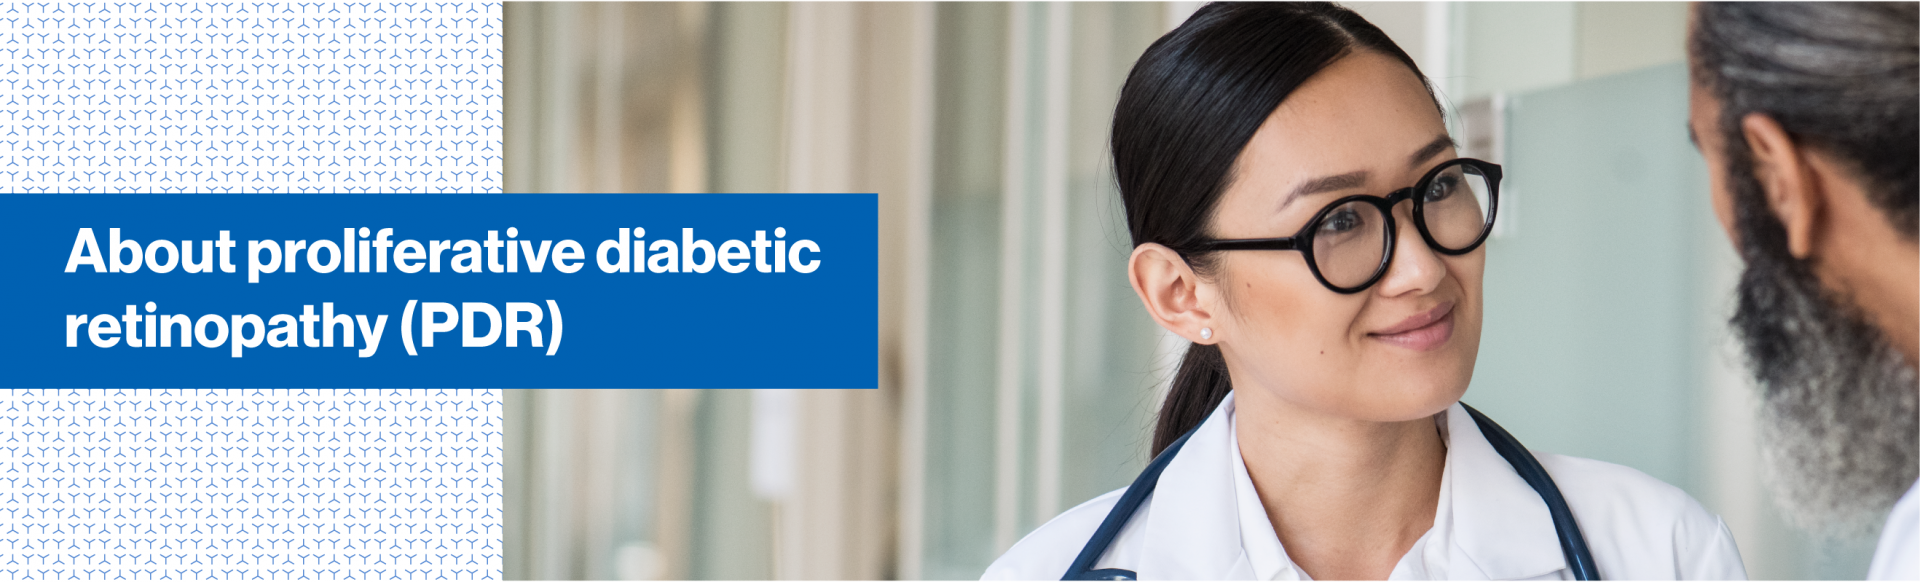 Top banner. About proliferative diabetic retinopathy (PDR)